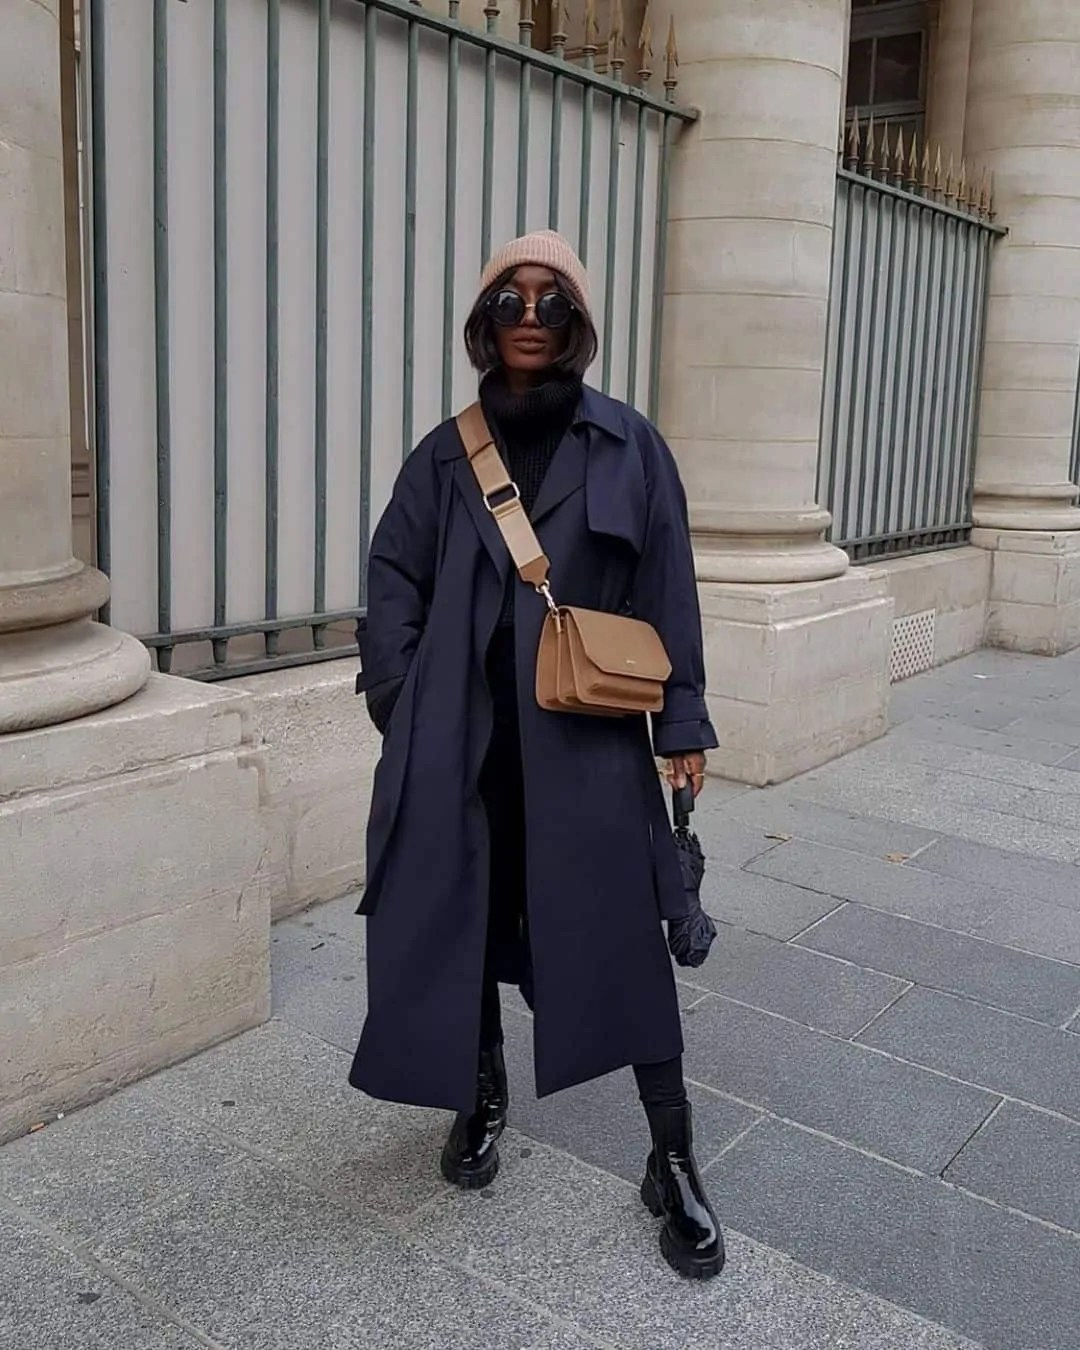 100+ fashion inspo outfits that you have to see no matter what your style is 163